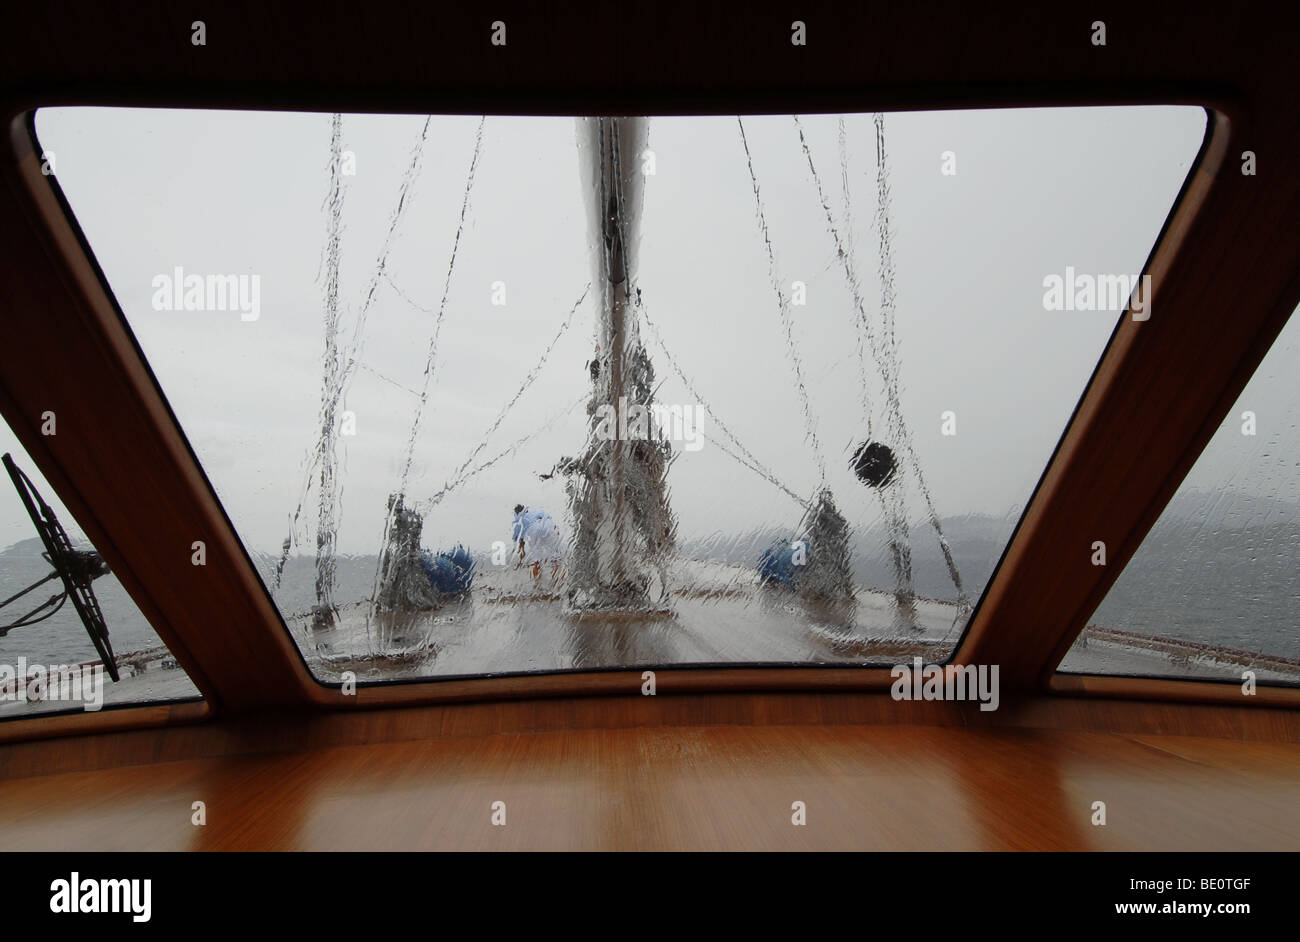 wooden sailboat sailing in the rain - Stock Image